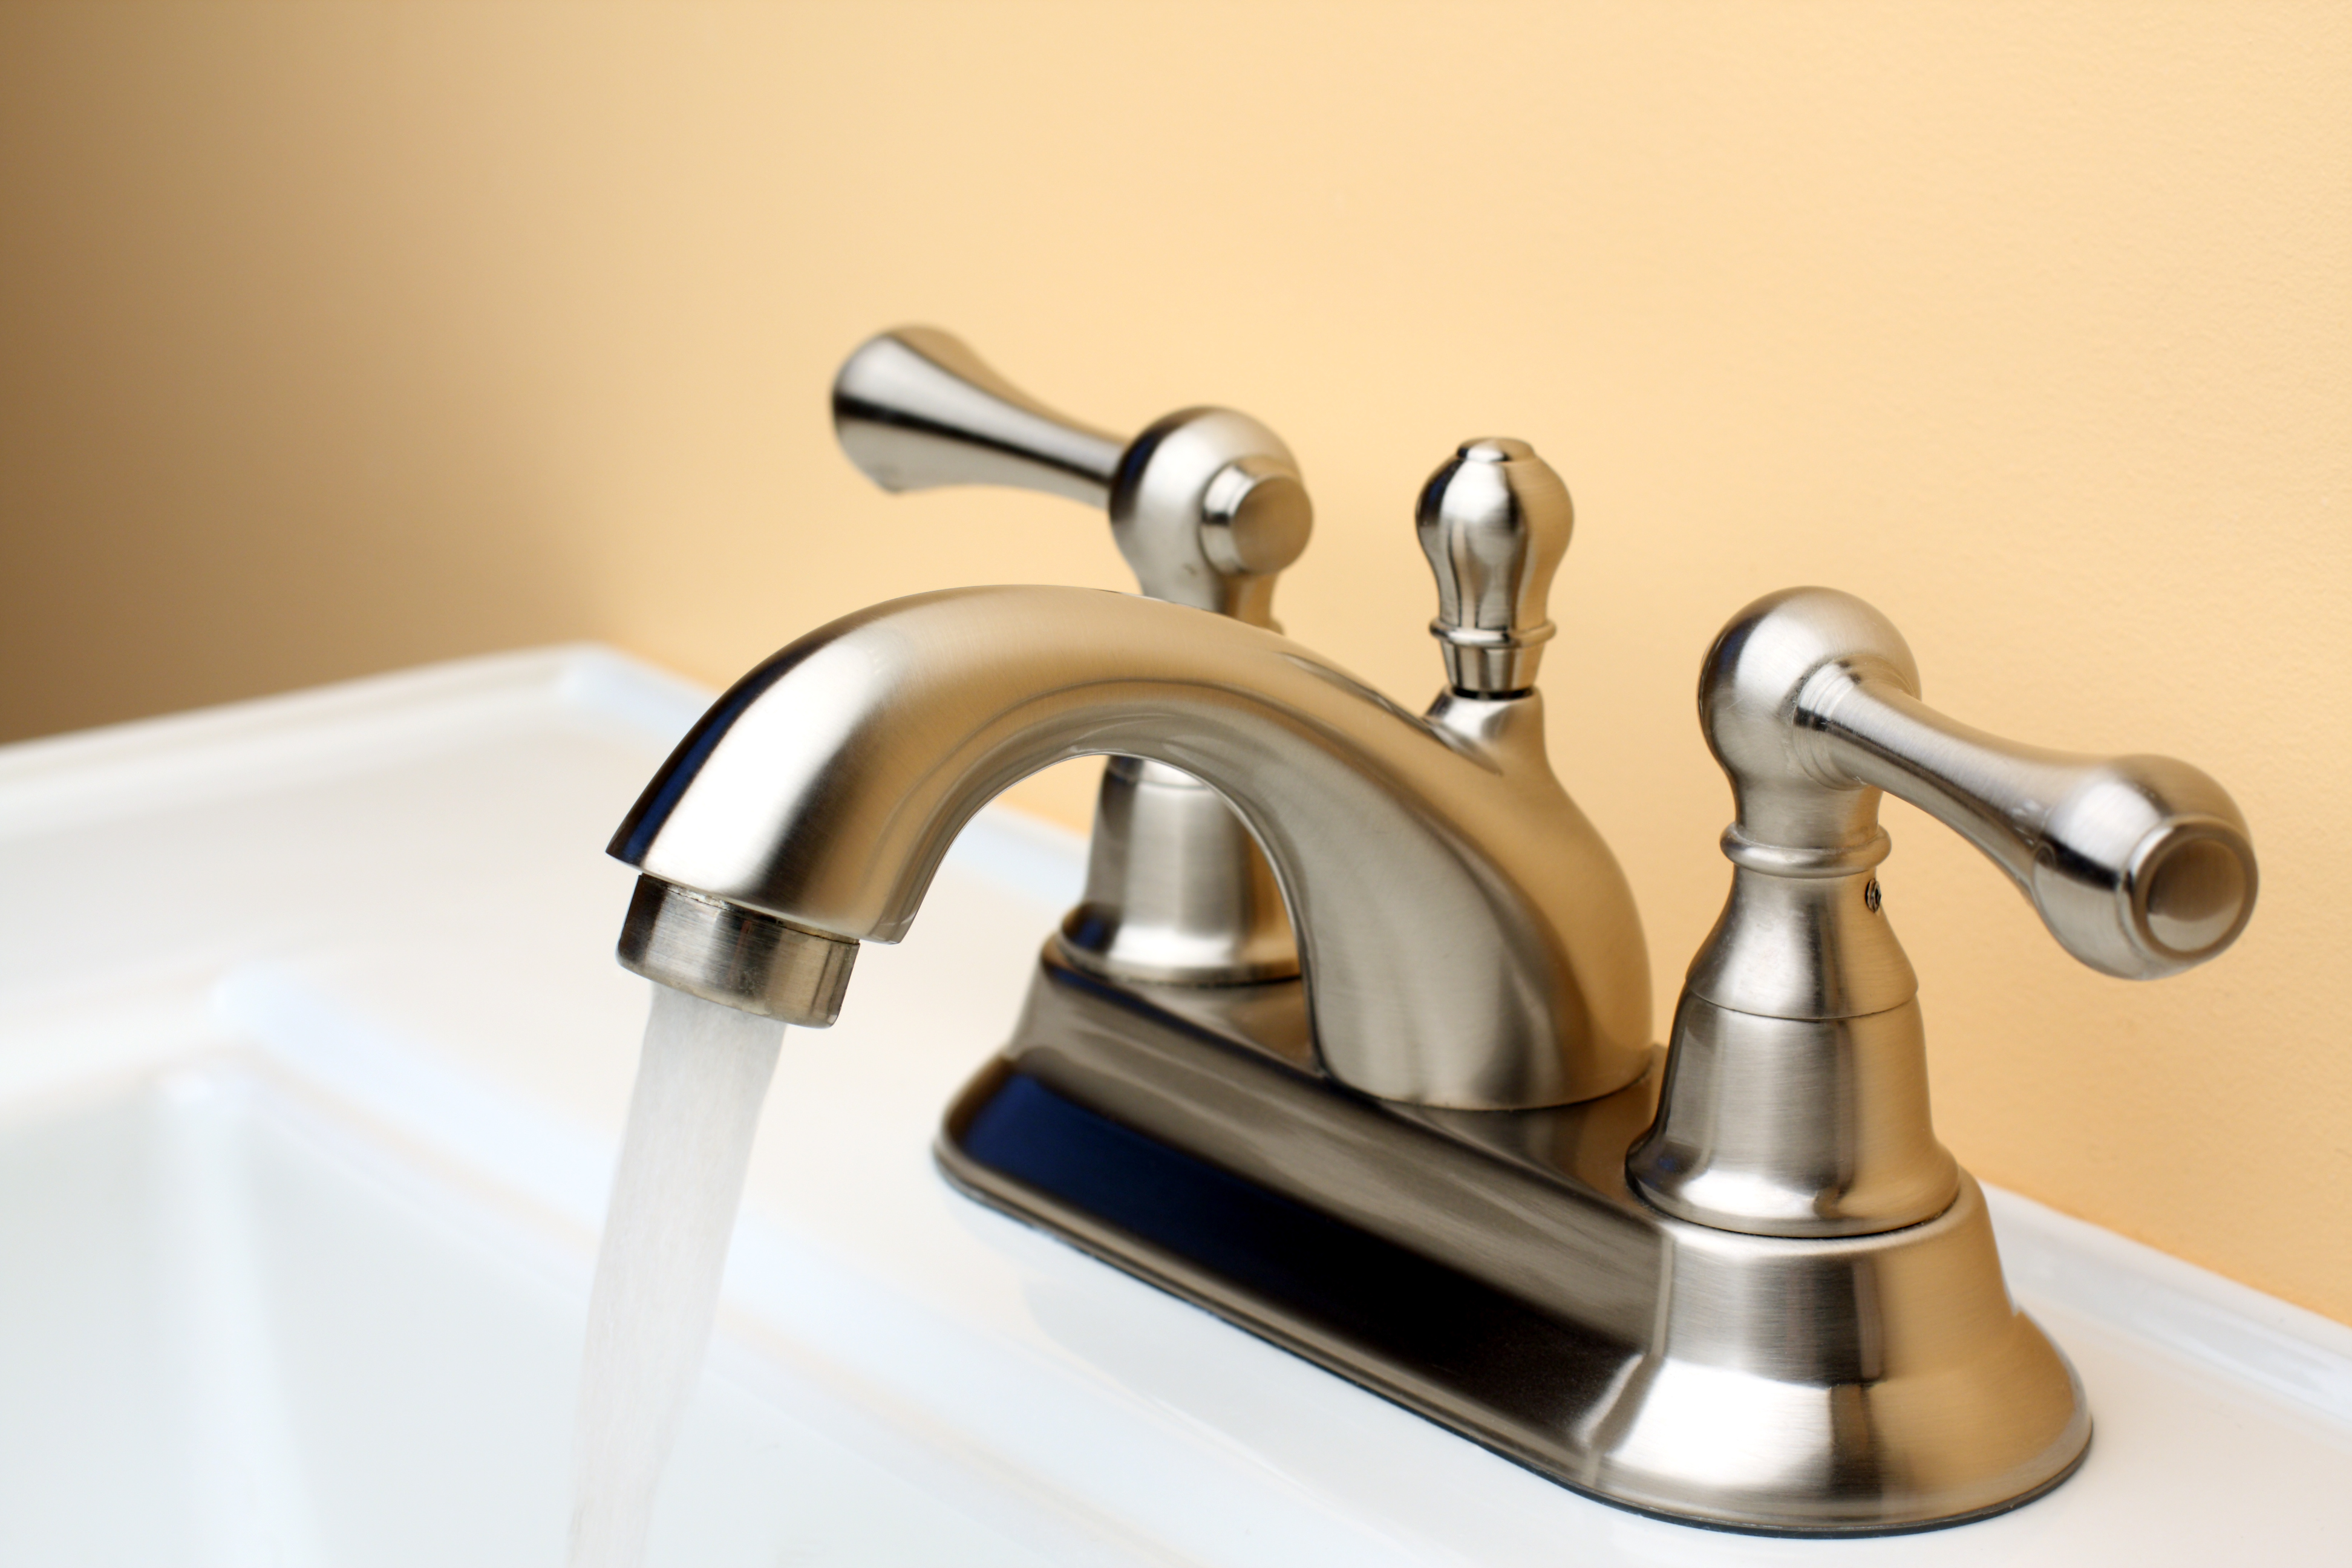 How to Clean a Moen Brushed Nickel Faucet | Hunker